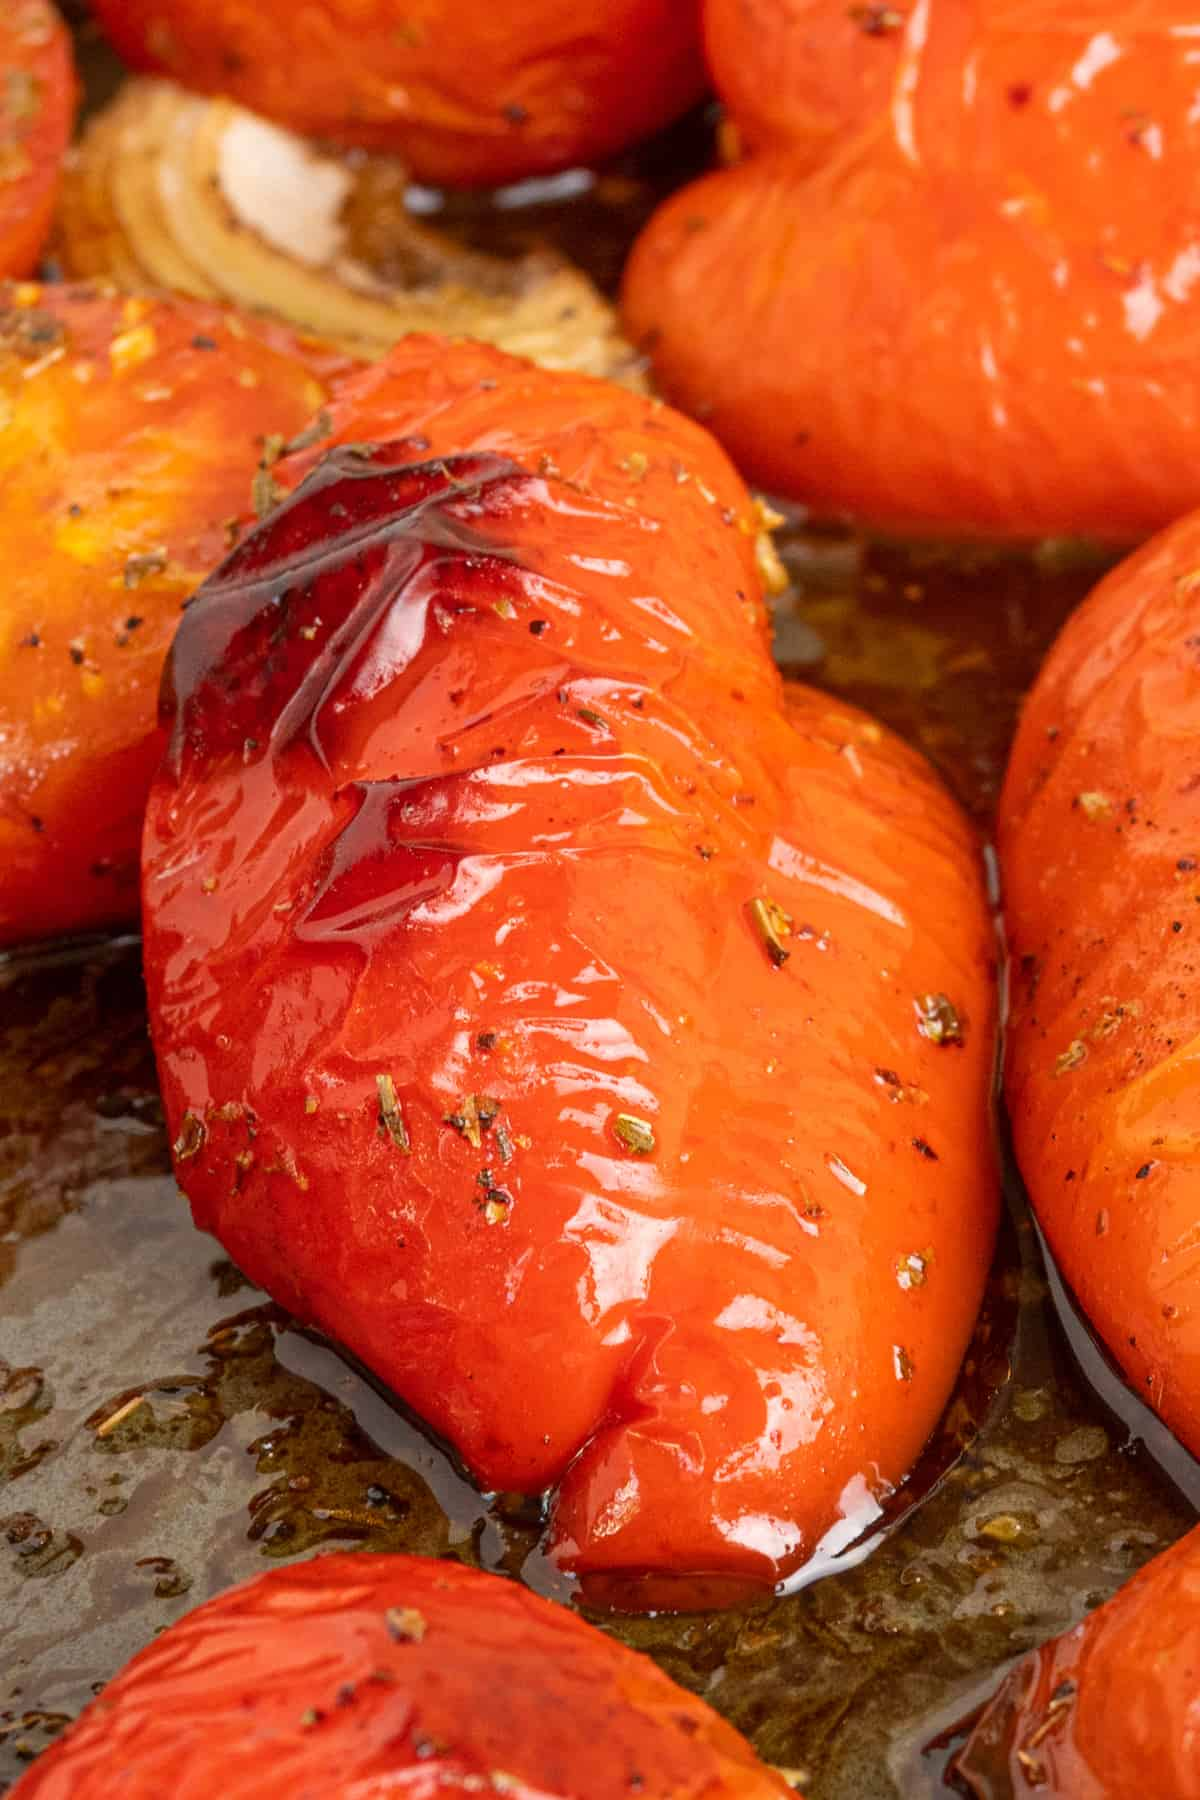 A roasted pepper. Its skin is coated in oil and herbs, slightly wrinkled and darkened in one place from the roasting.